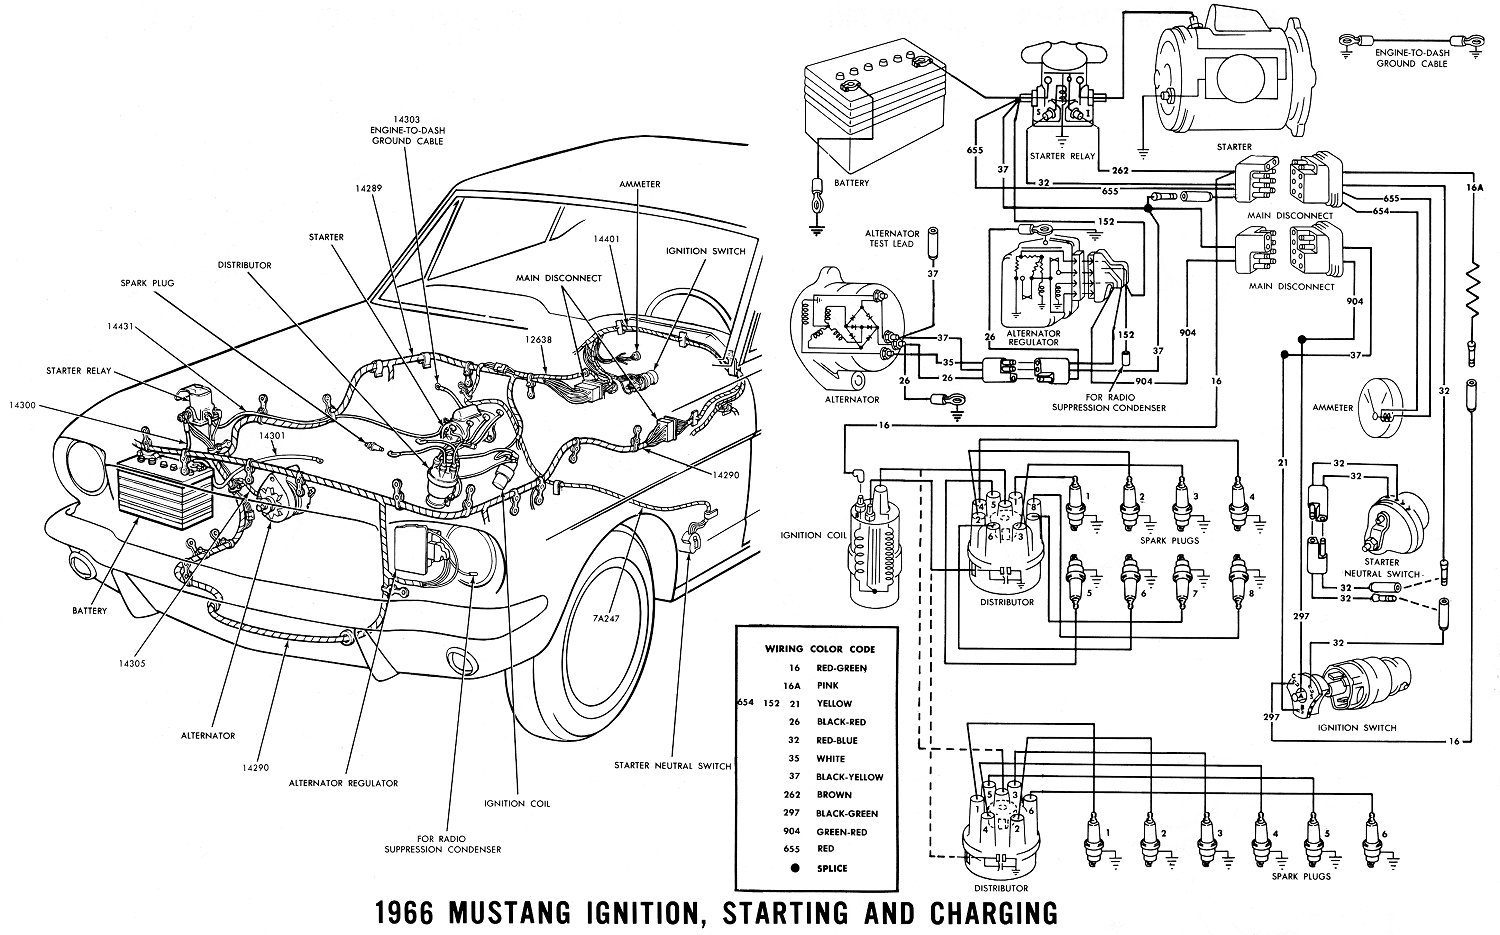 83 mustang 302 wiring diagram   29 wiring diagram images